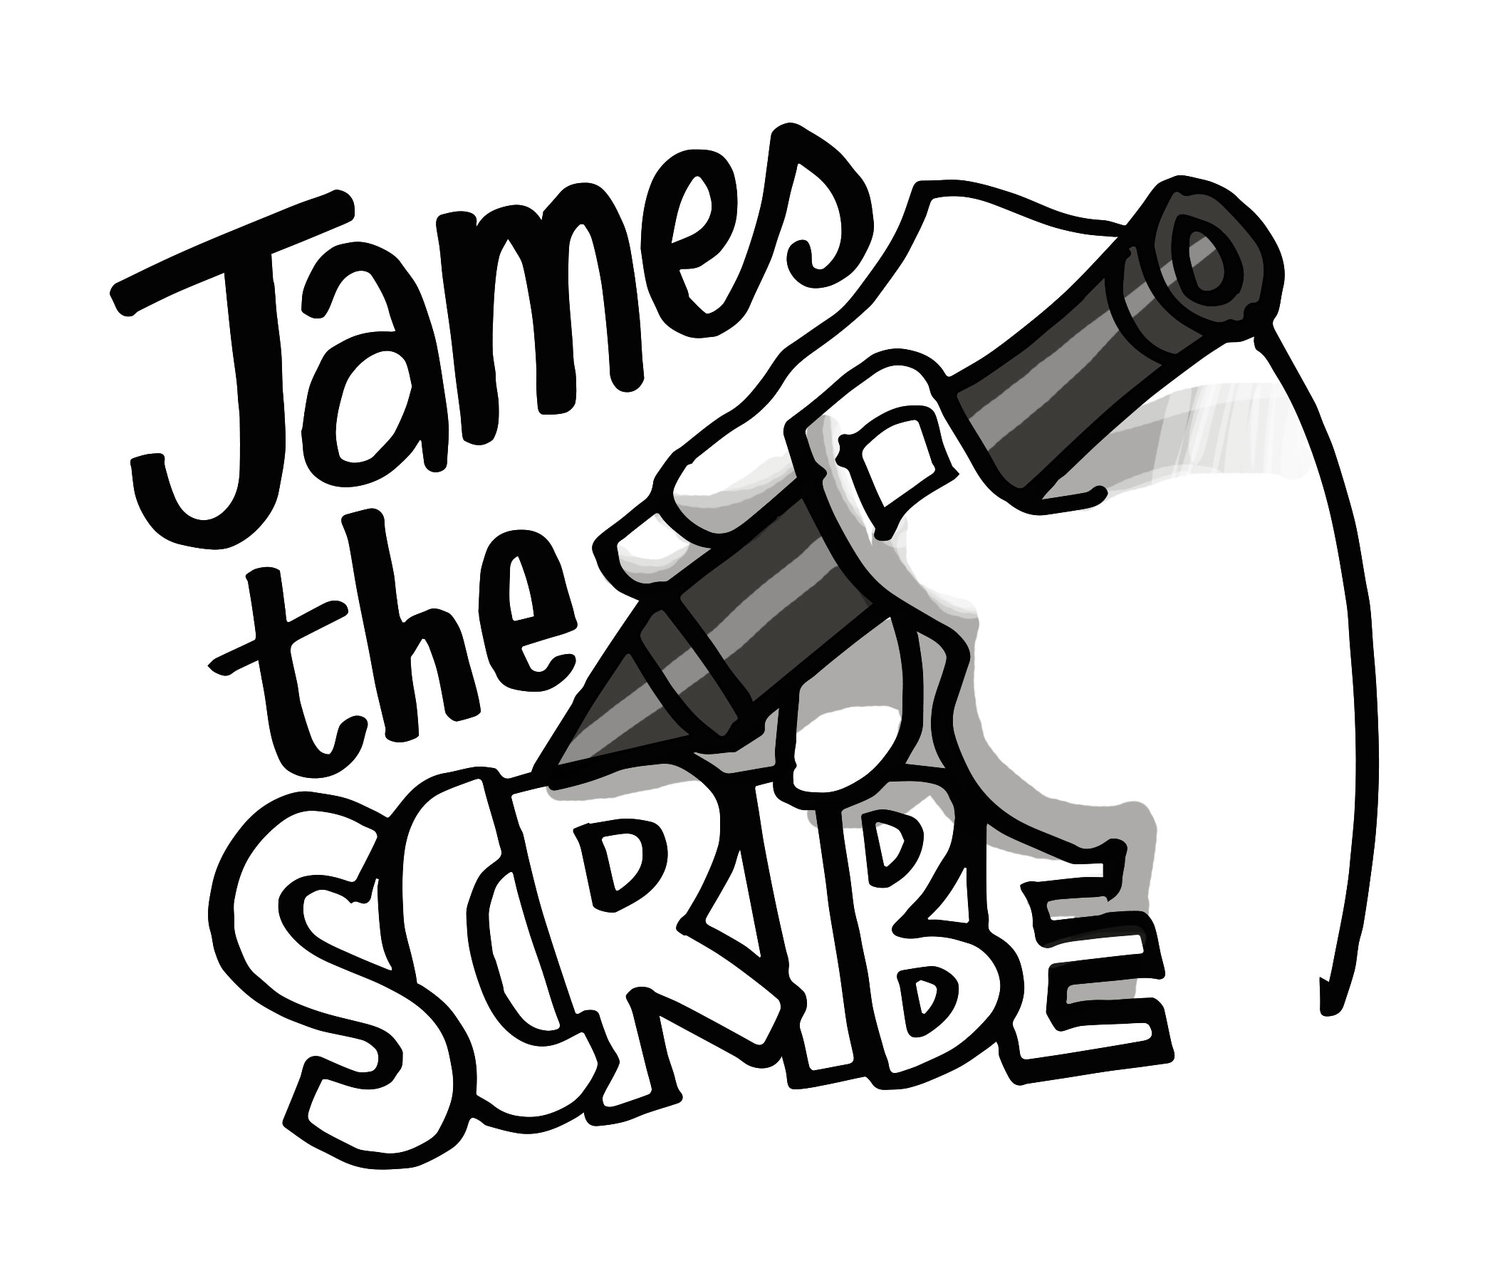 James the Scribe